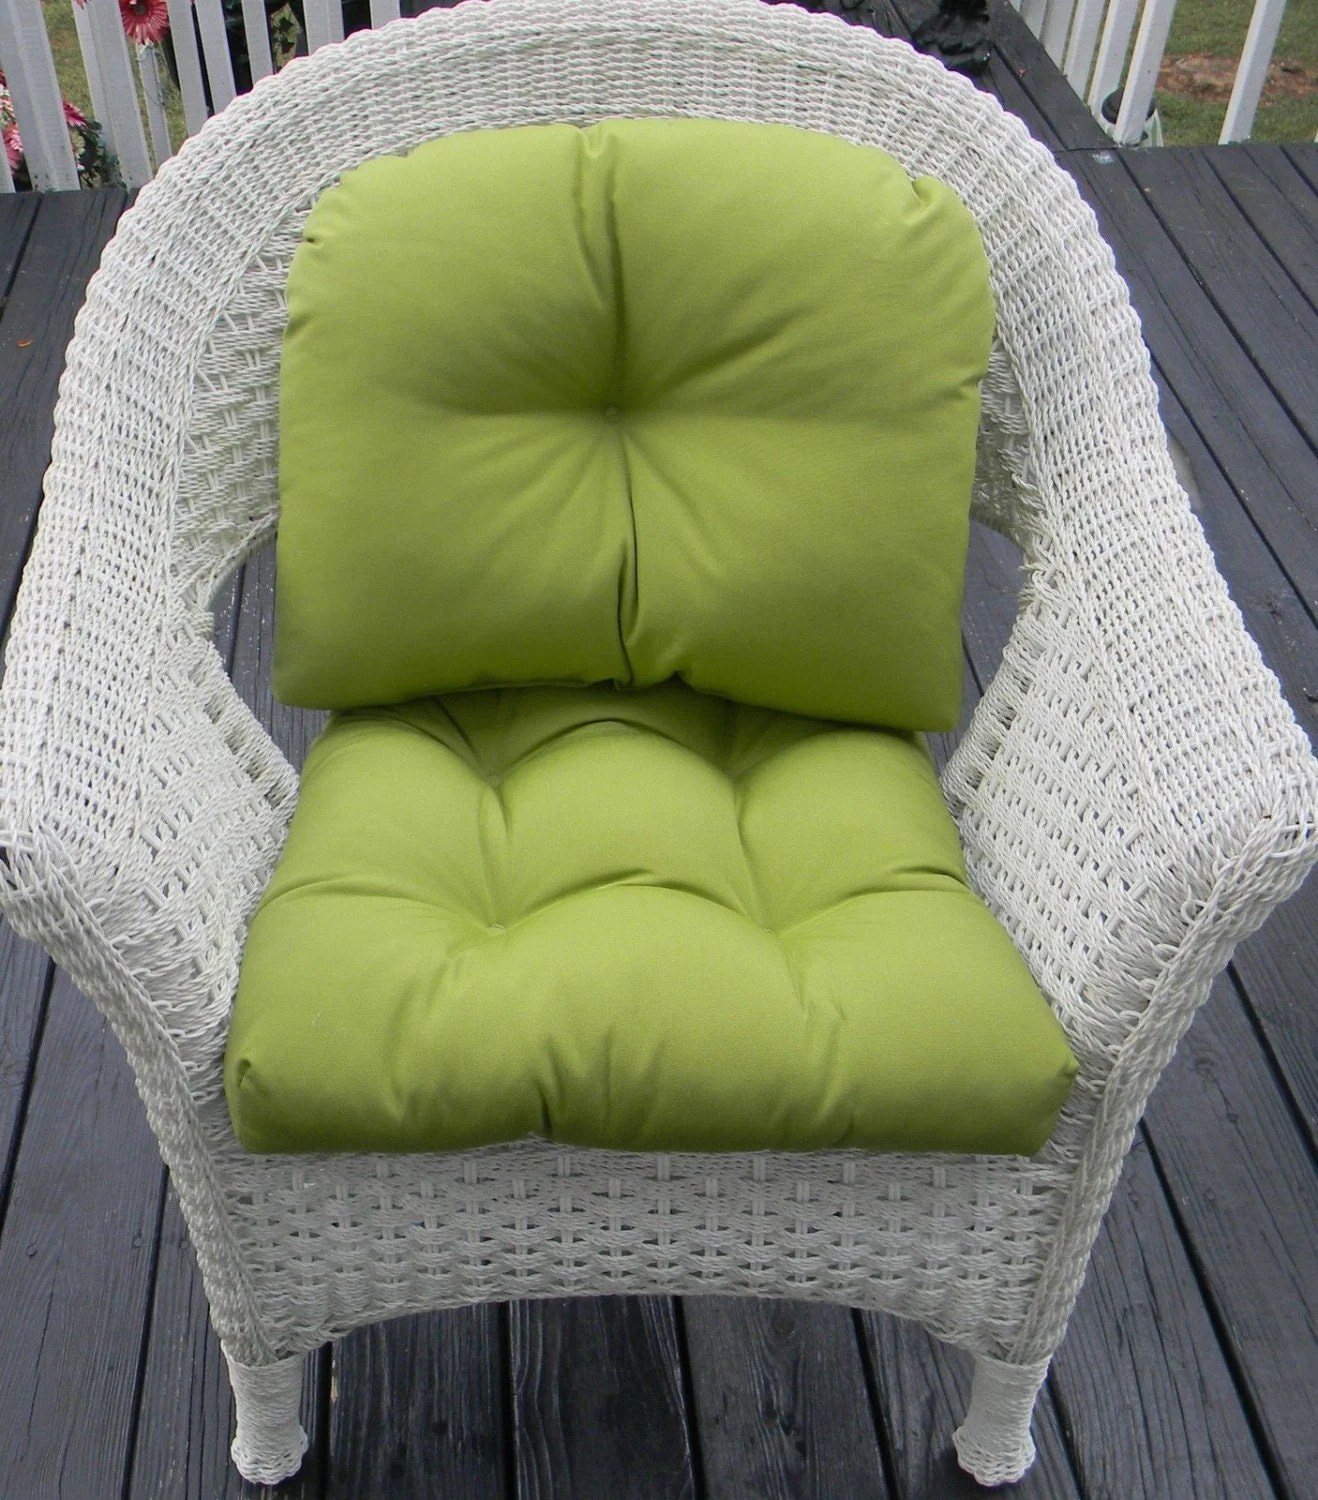 Back Pillow For Chair Indoor Outdoor Wicker Chair Cushion And Back Pillow Cushion